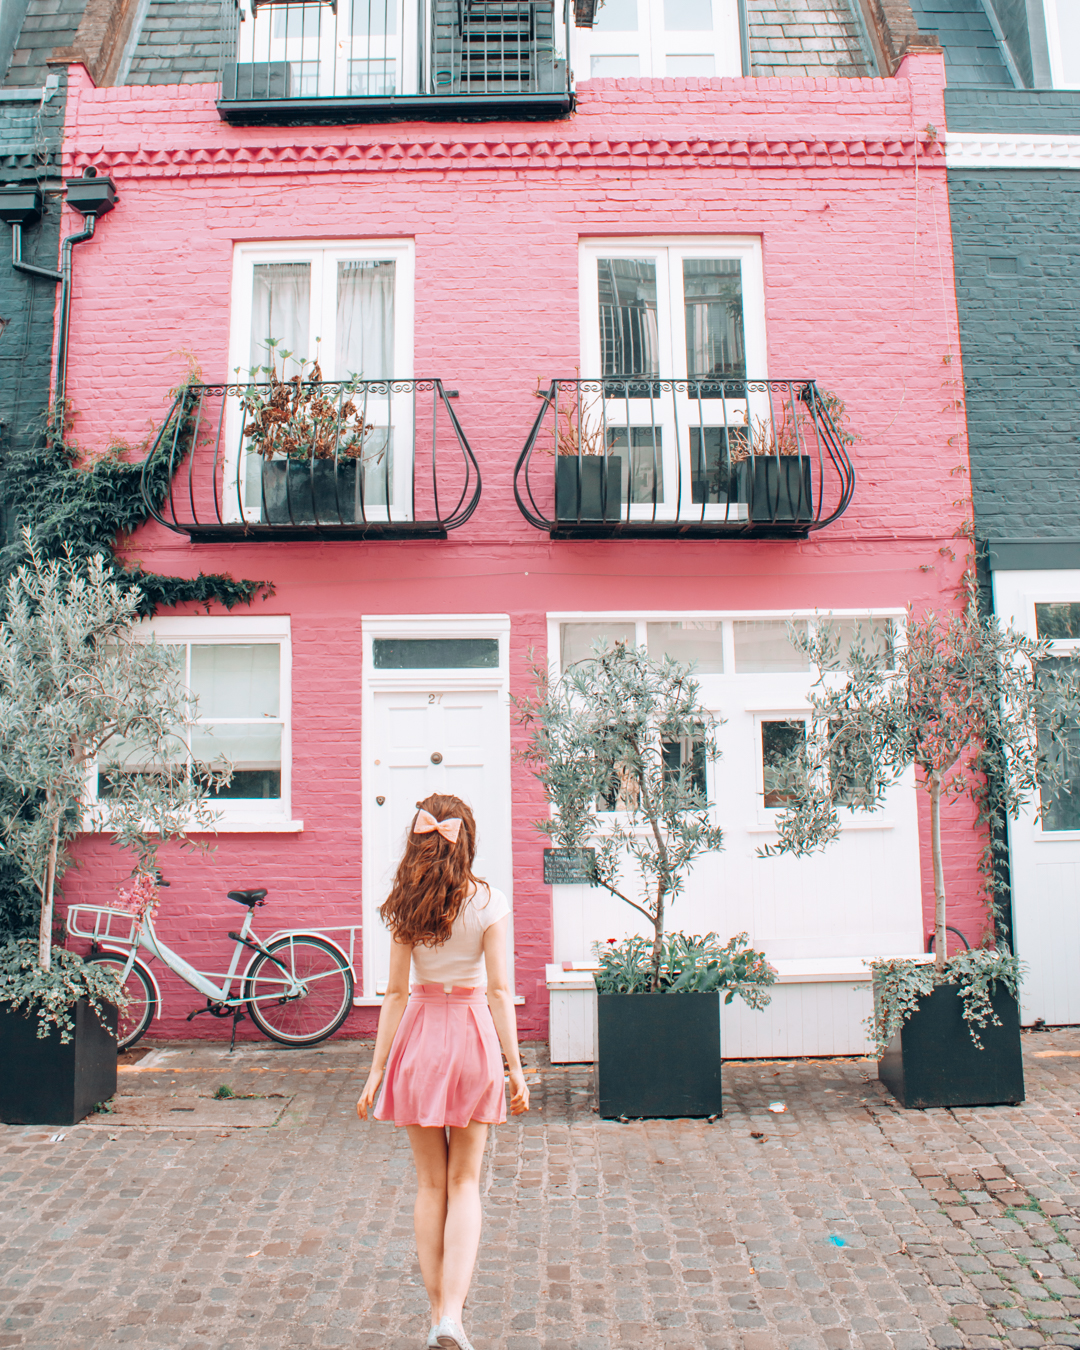 Instagrammable pink house with balconies in London